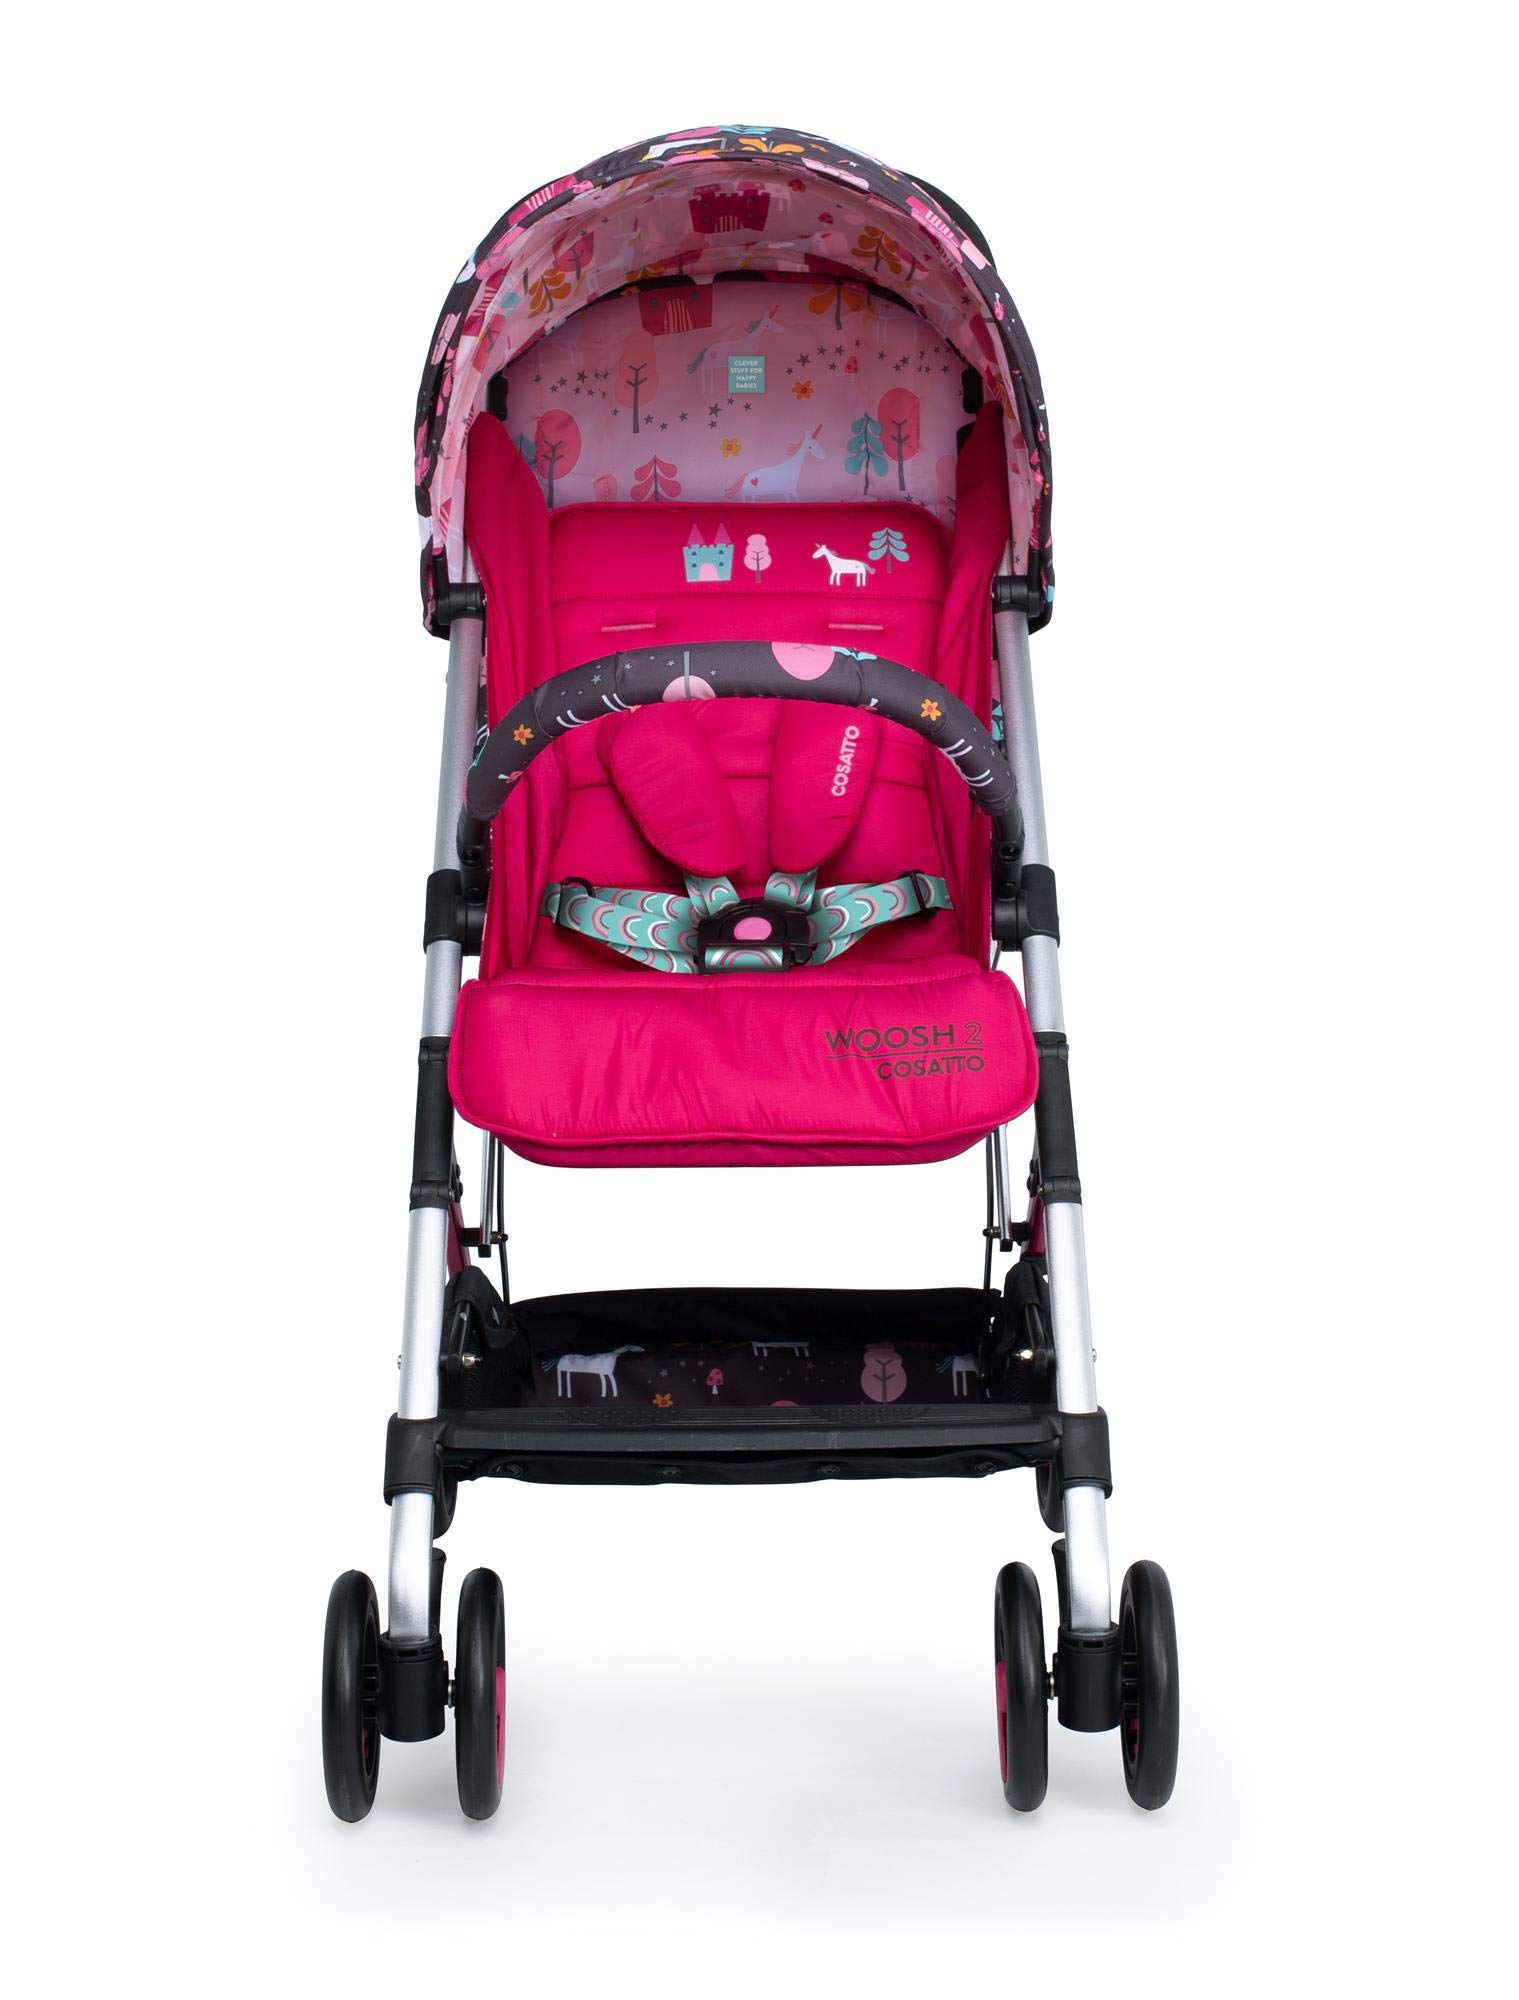 Cosatto CT4224 Woosh 2 Unicorn Land 7.2 kg Cosatto Suitable from birth to max weight of 25kg, lets your toddler use it for even longer Lightweight, sturdy aluminium frame New-born recline 5